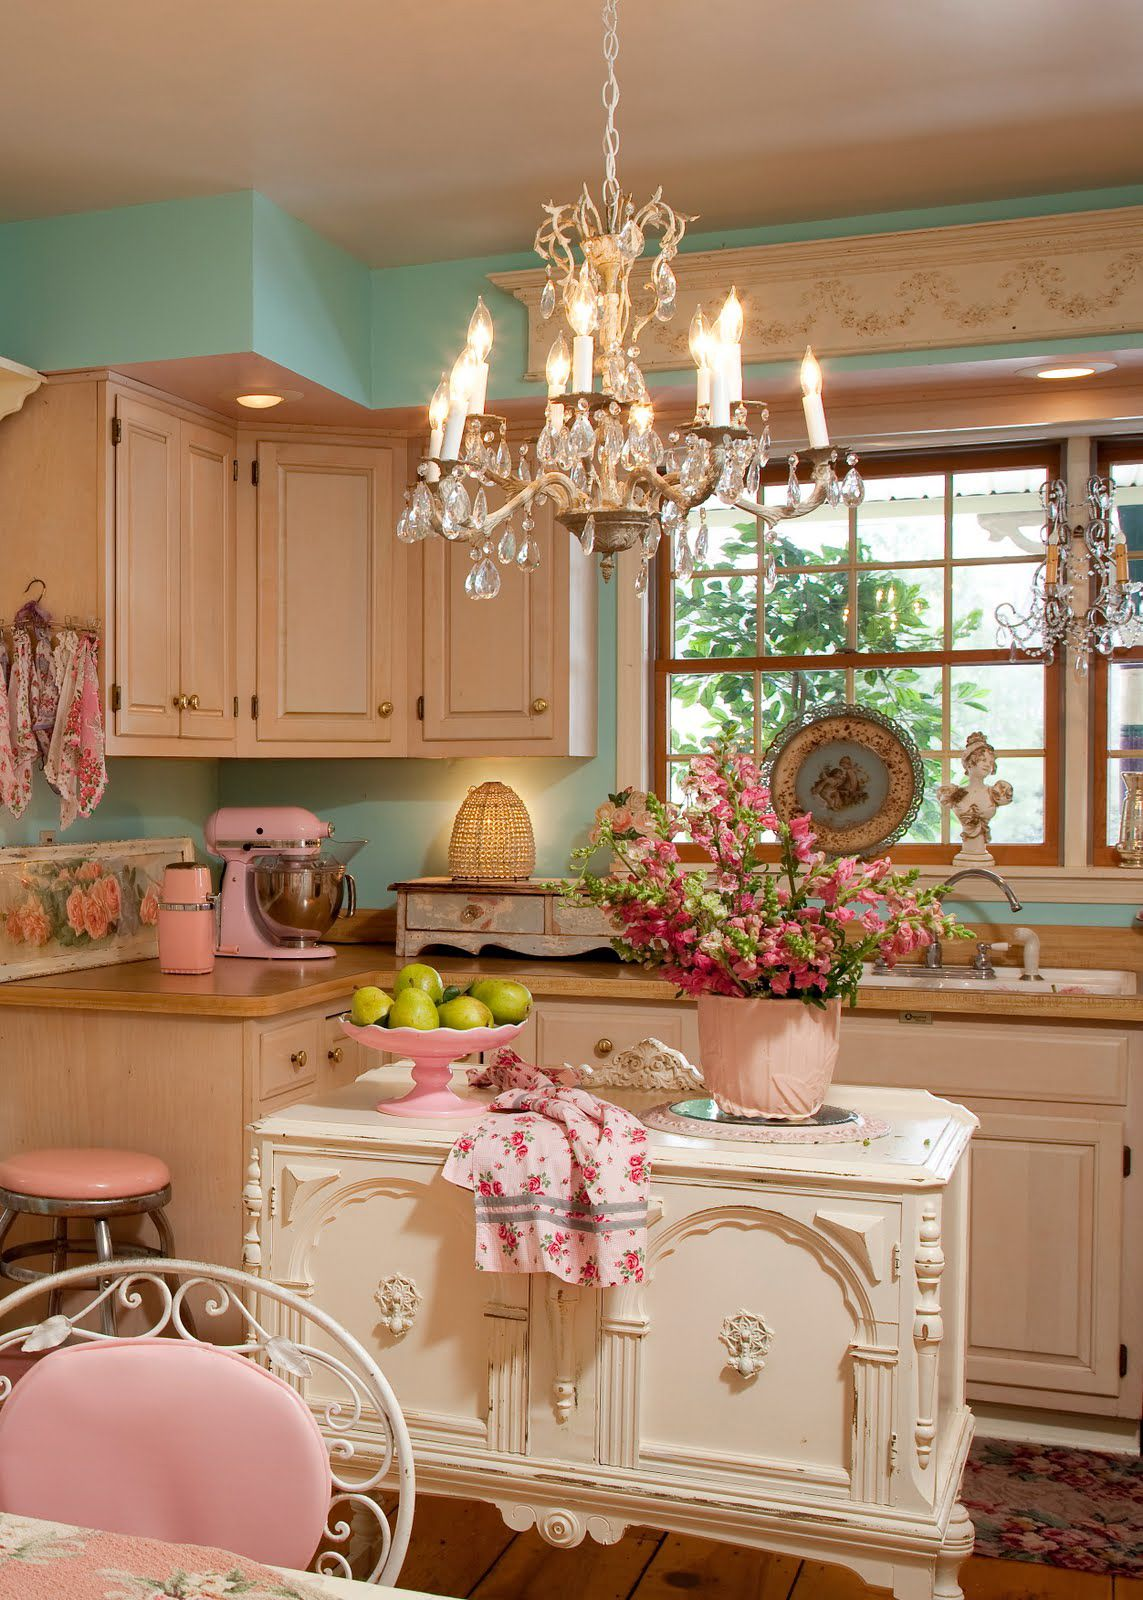 love it!!!!!! this is how my kitchen would look